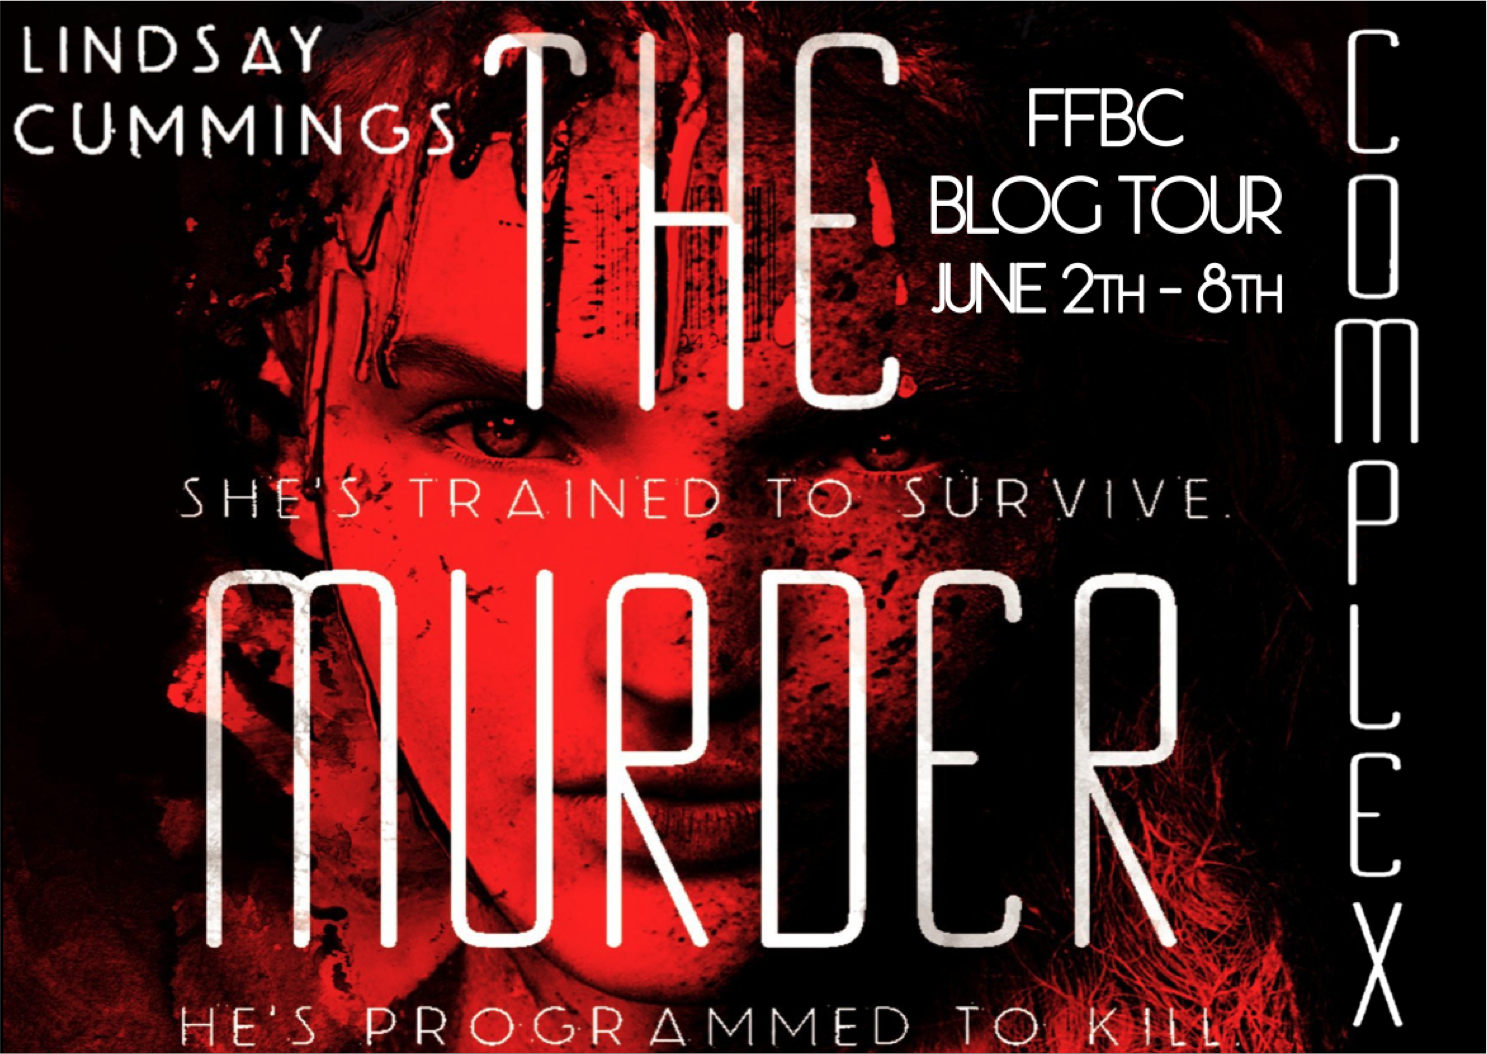 FFBC Blog Tour: The Murder Complex + Fear Trials by Lindsay Cummings